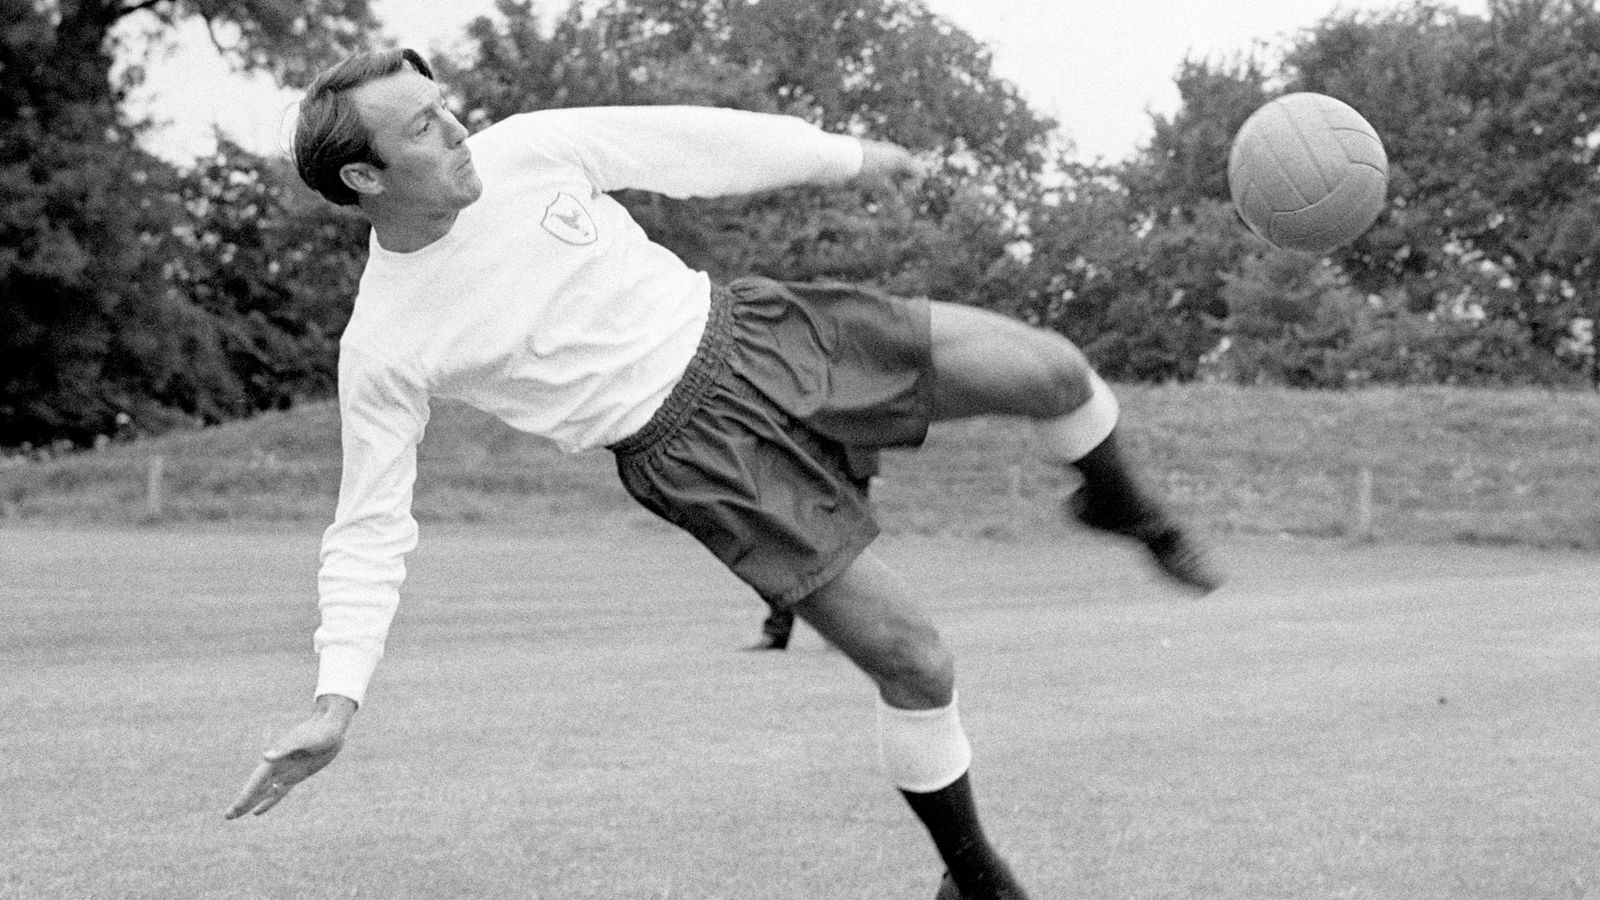 Jimmy Greaves: Tottenham Hotspur and England legend's life in pictures